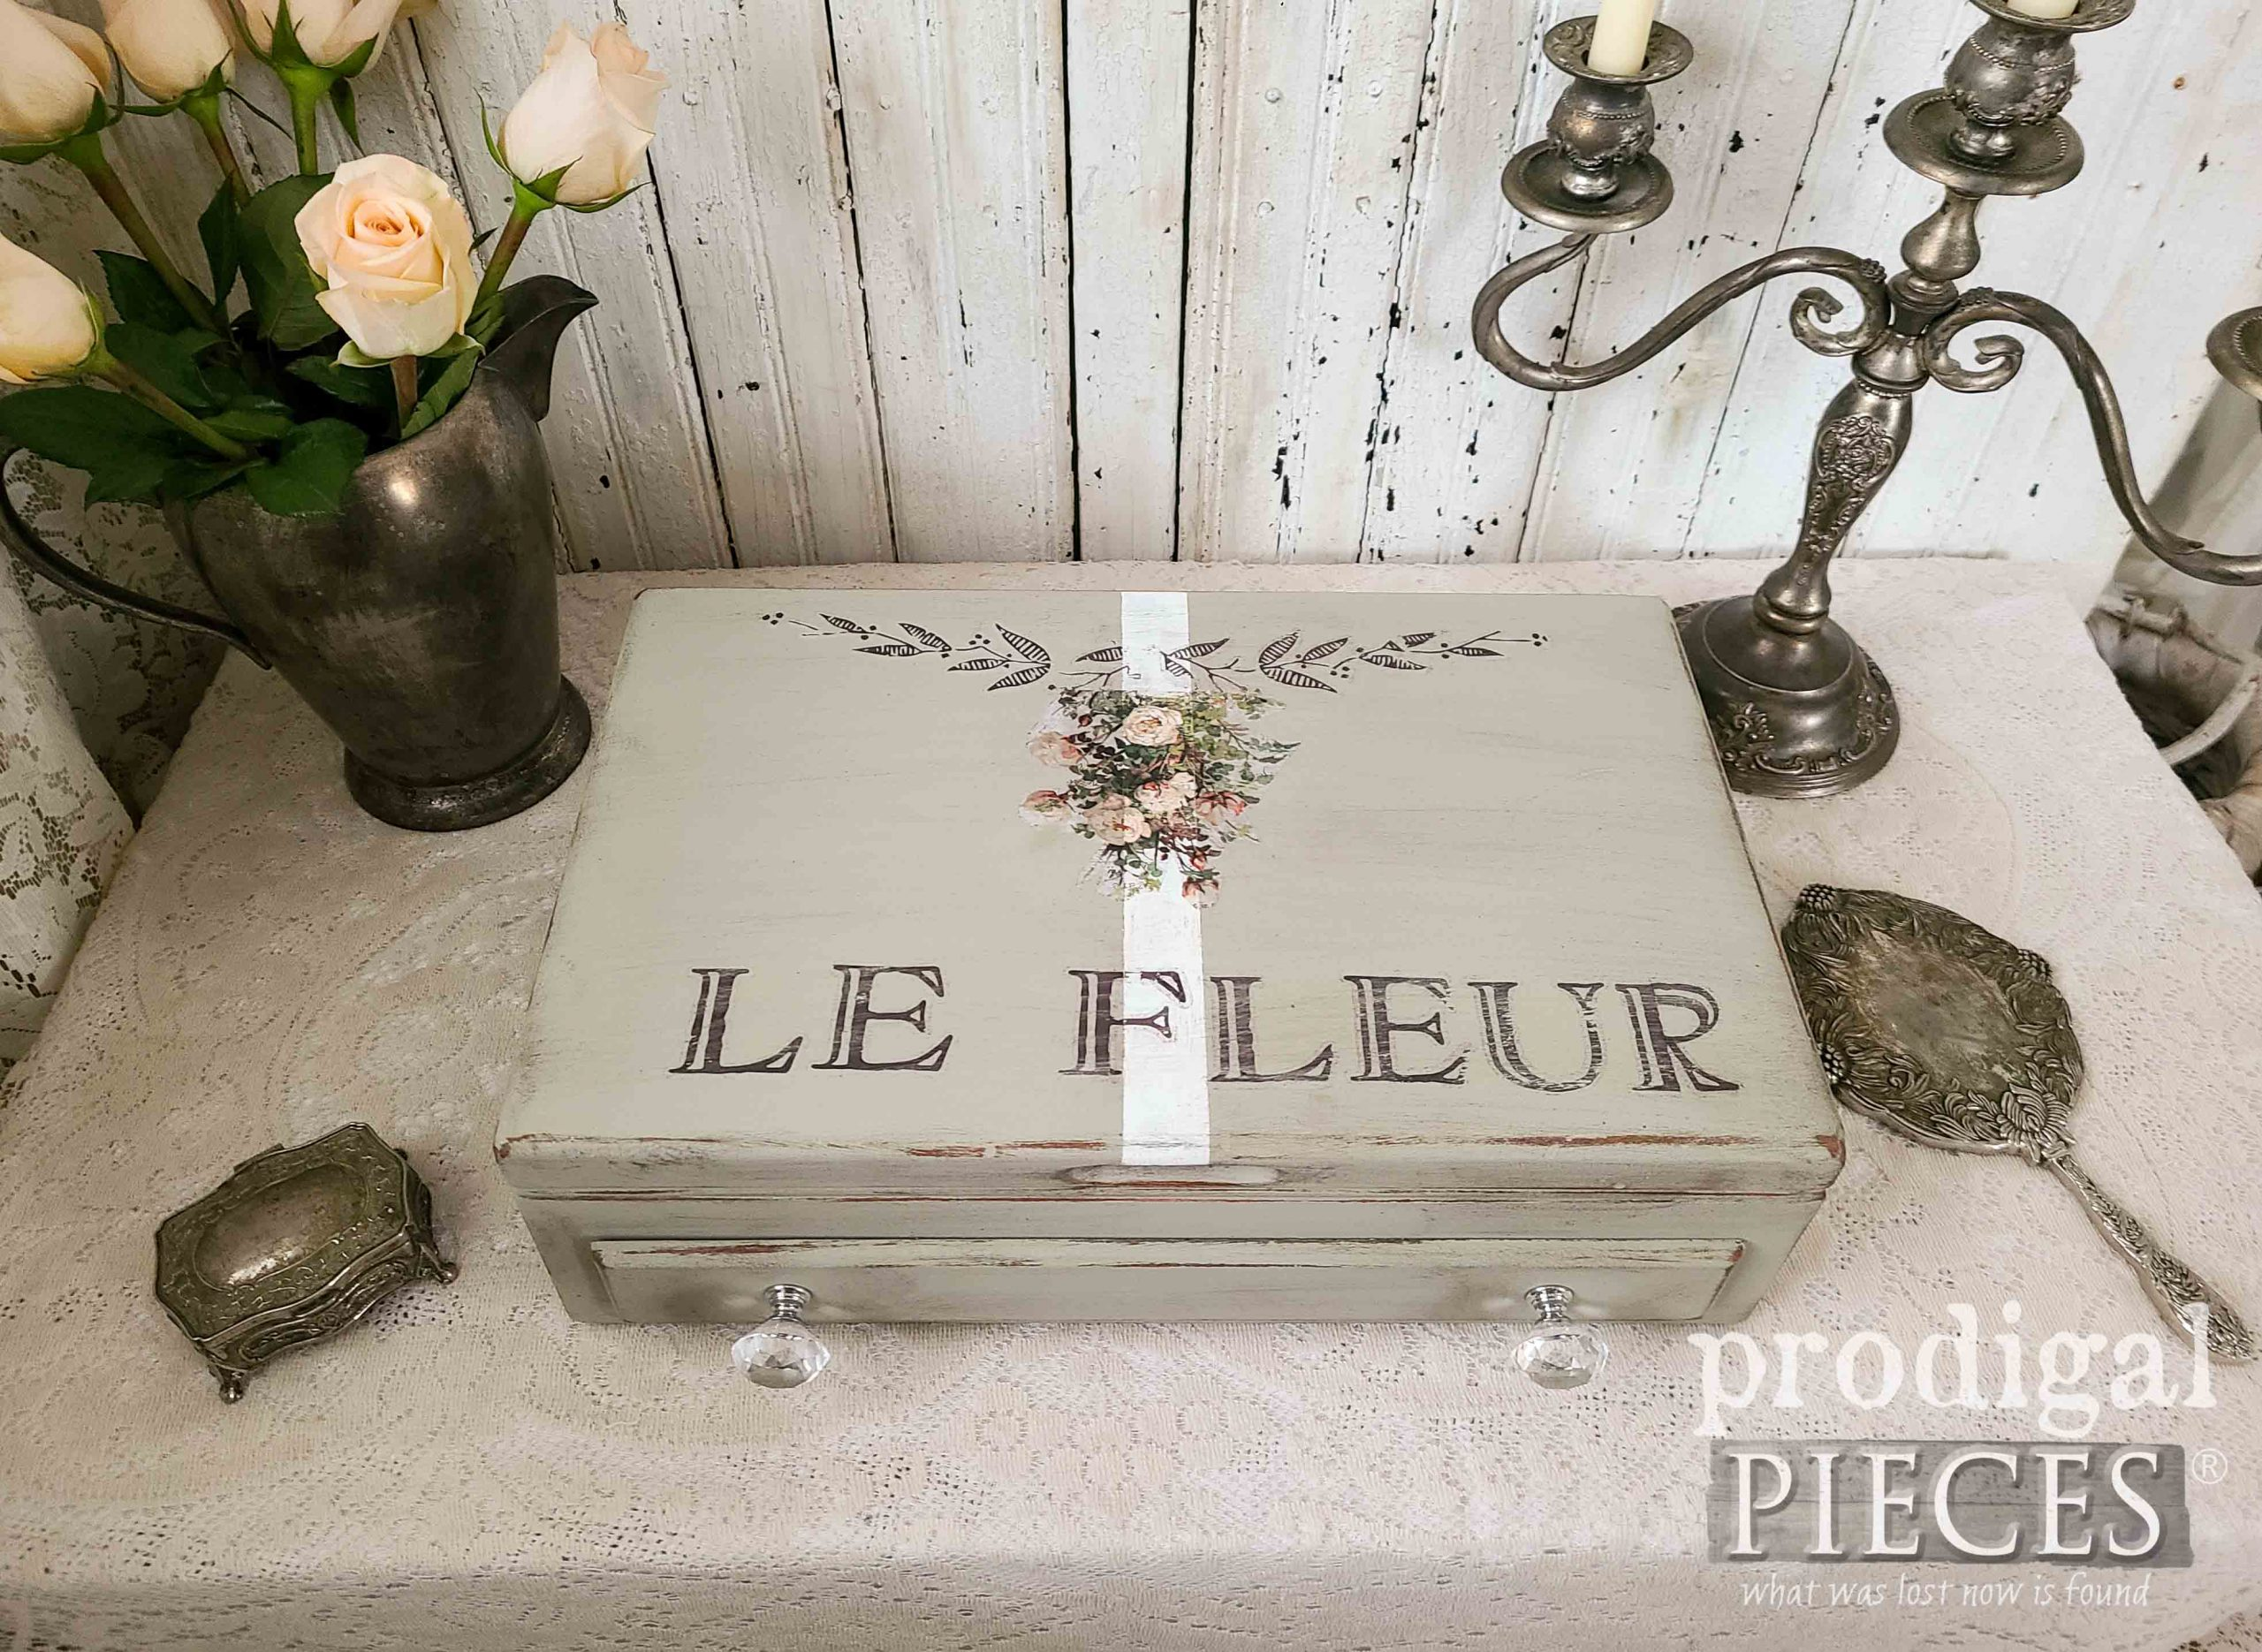 French Chic Storage Box from Upcycled Silverware Chest by Larissa of Prodigal Pieces | prodigalpieces.com #prodigalpieces #shabbychic #diy #upcycled